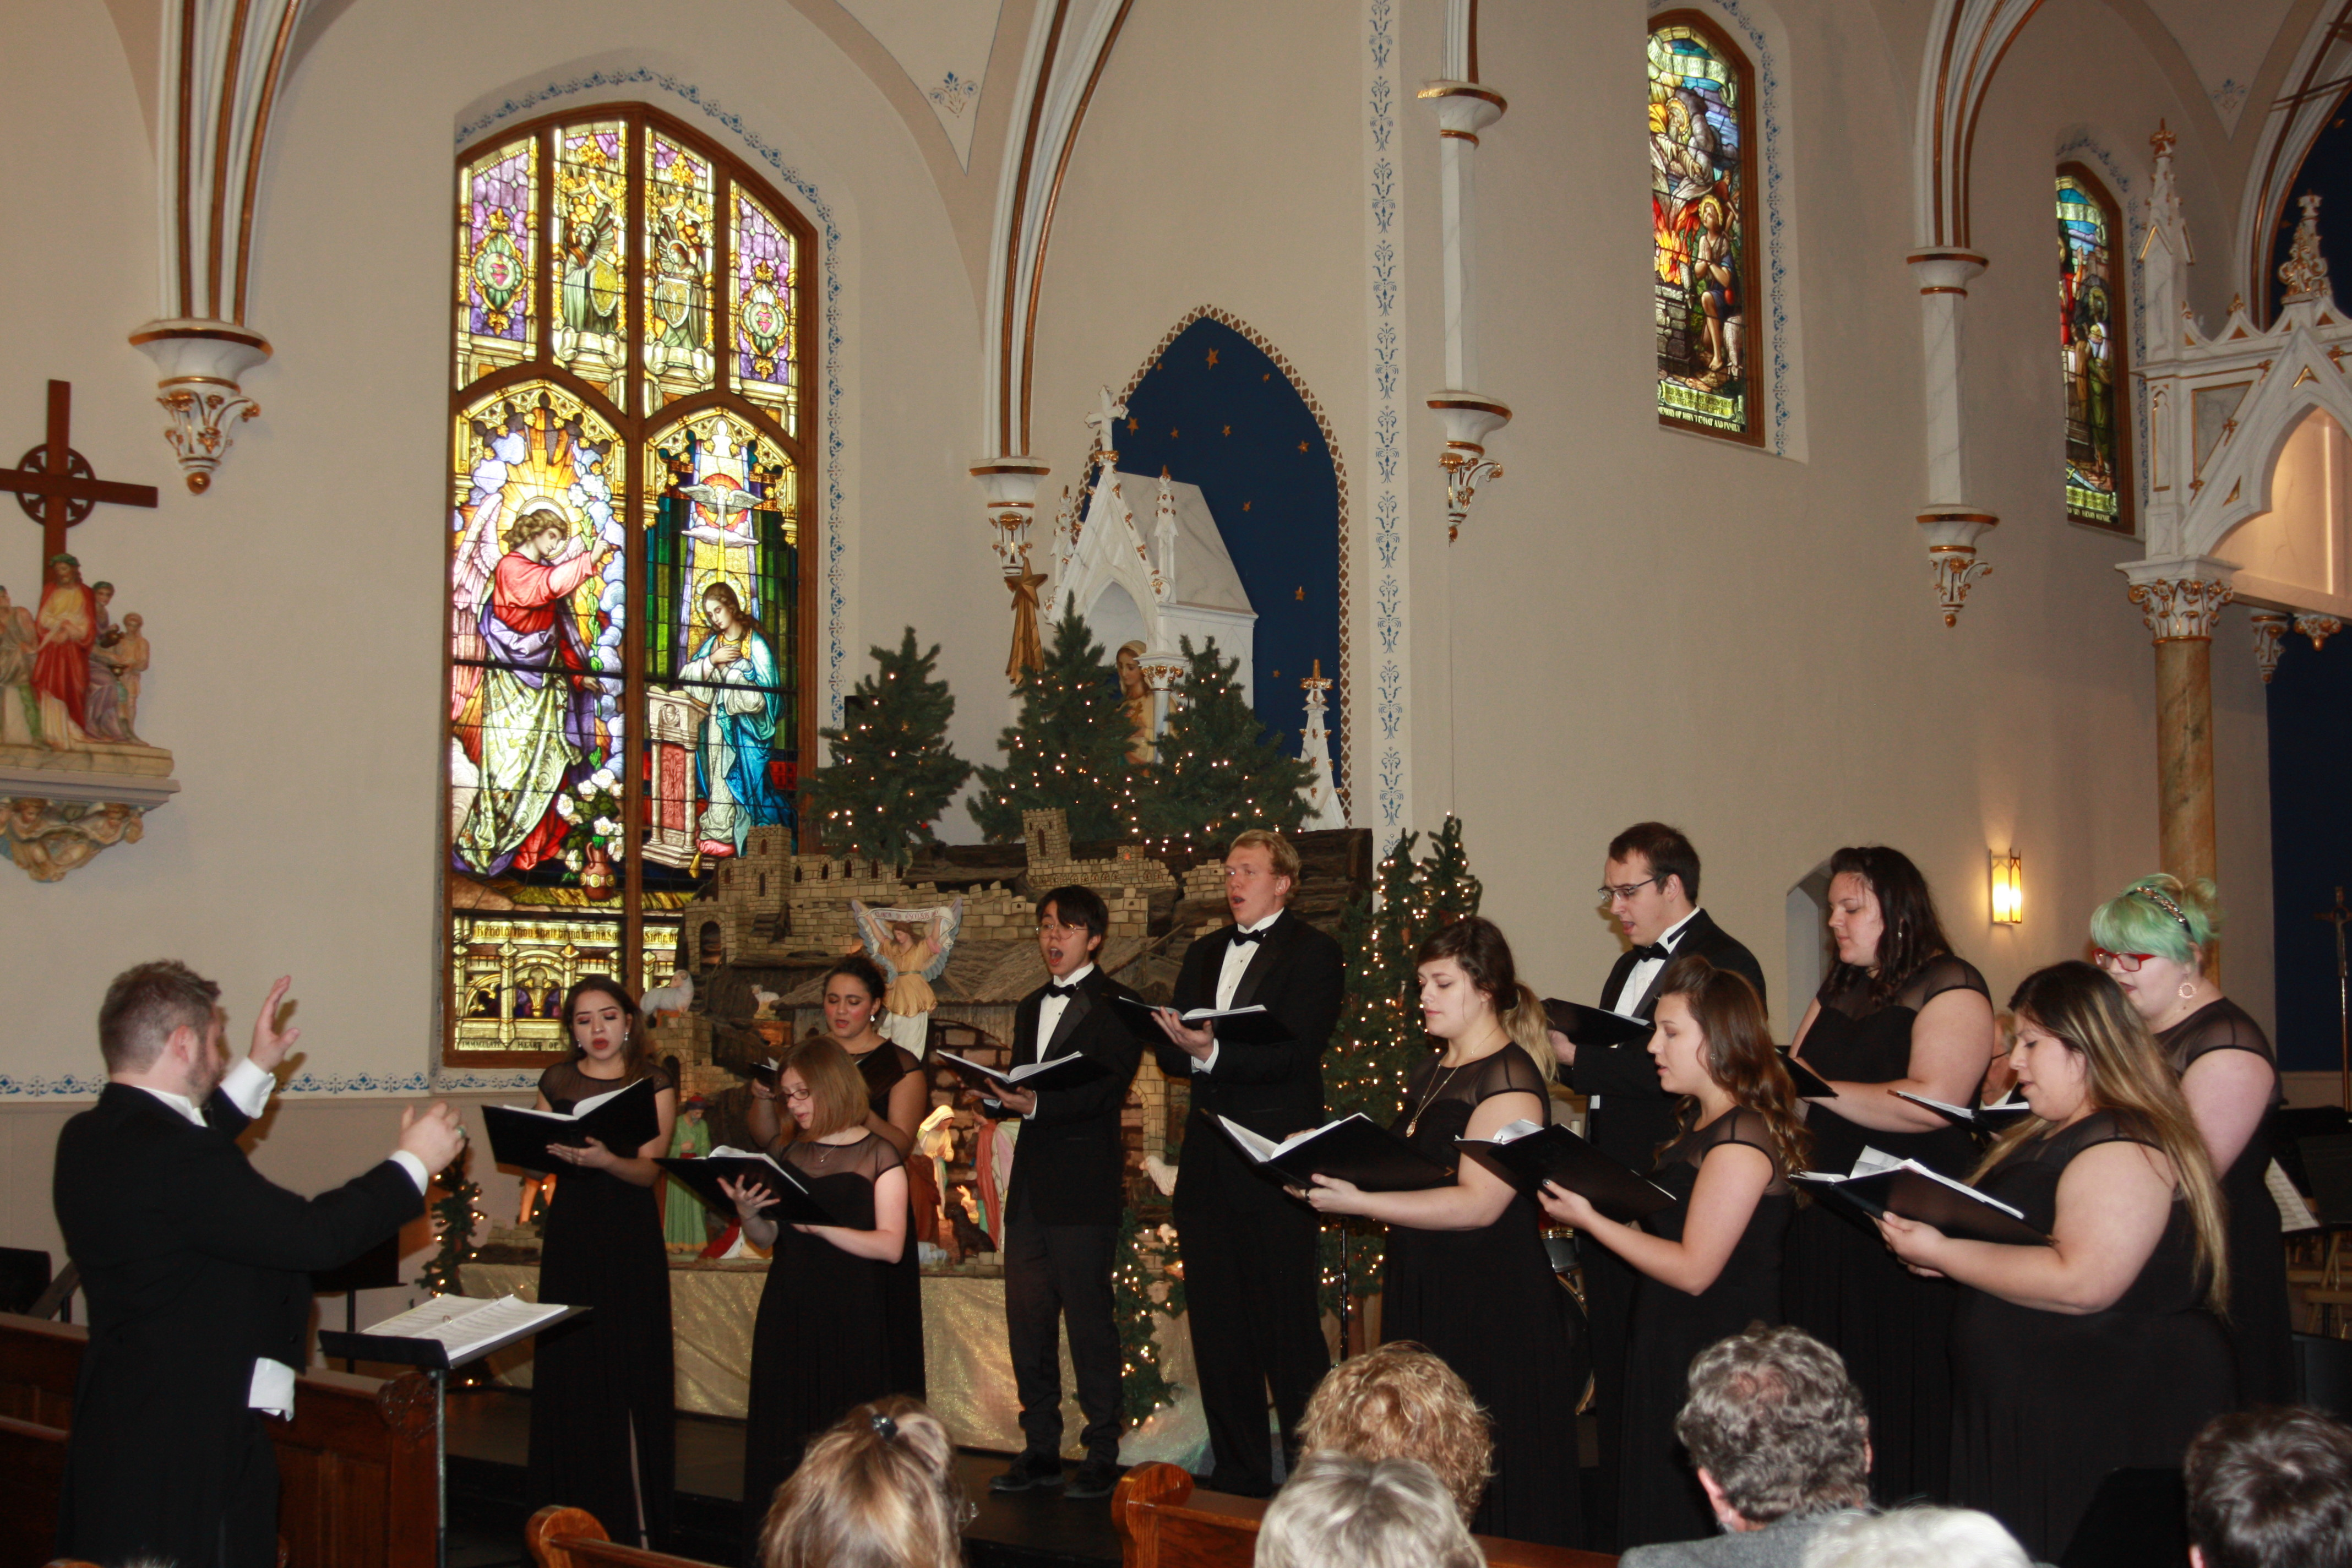 College Singers perform during the Holiday Concert at Windthorst